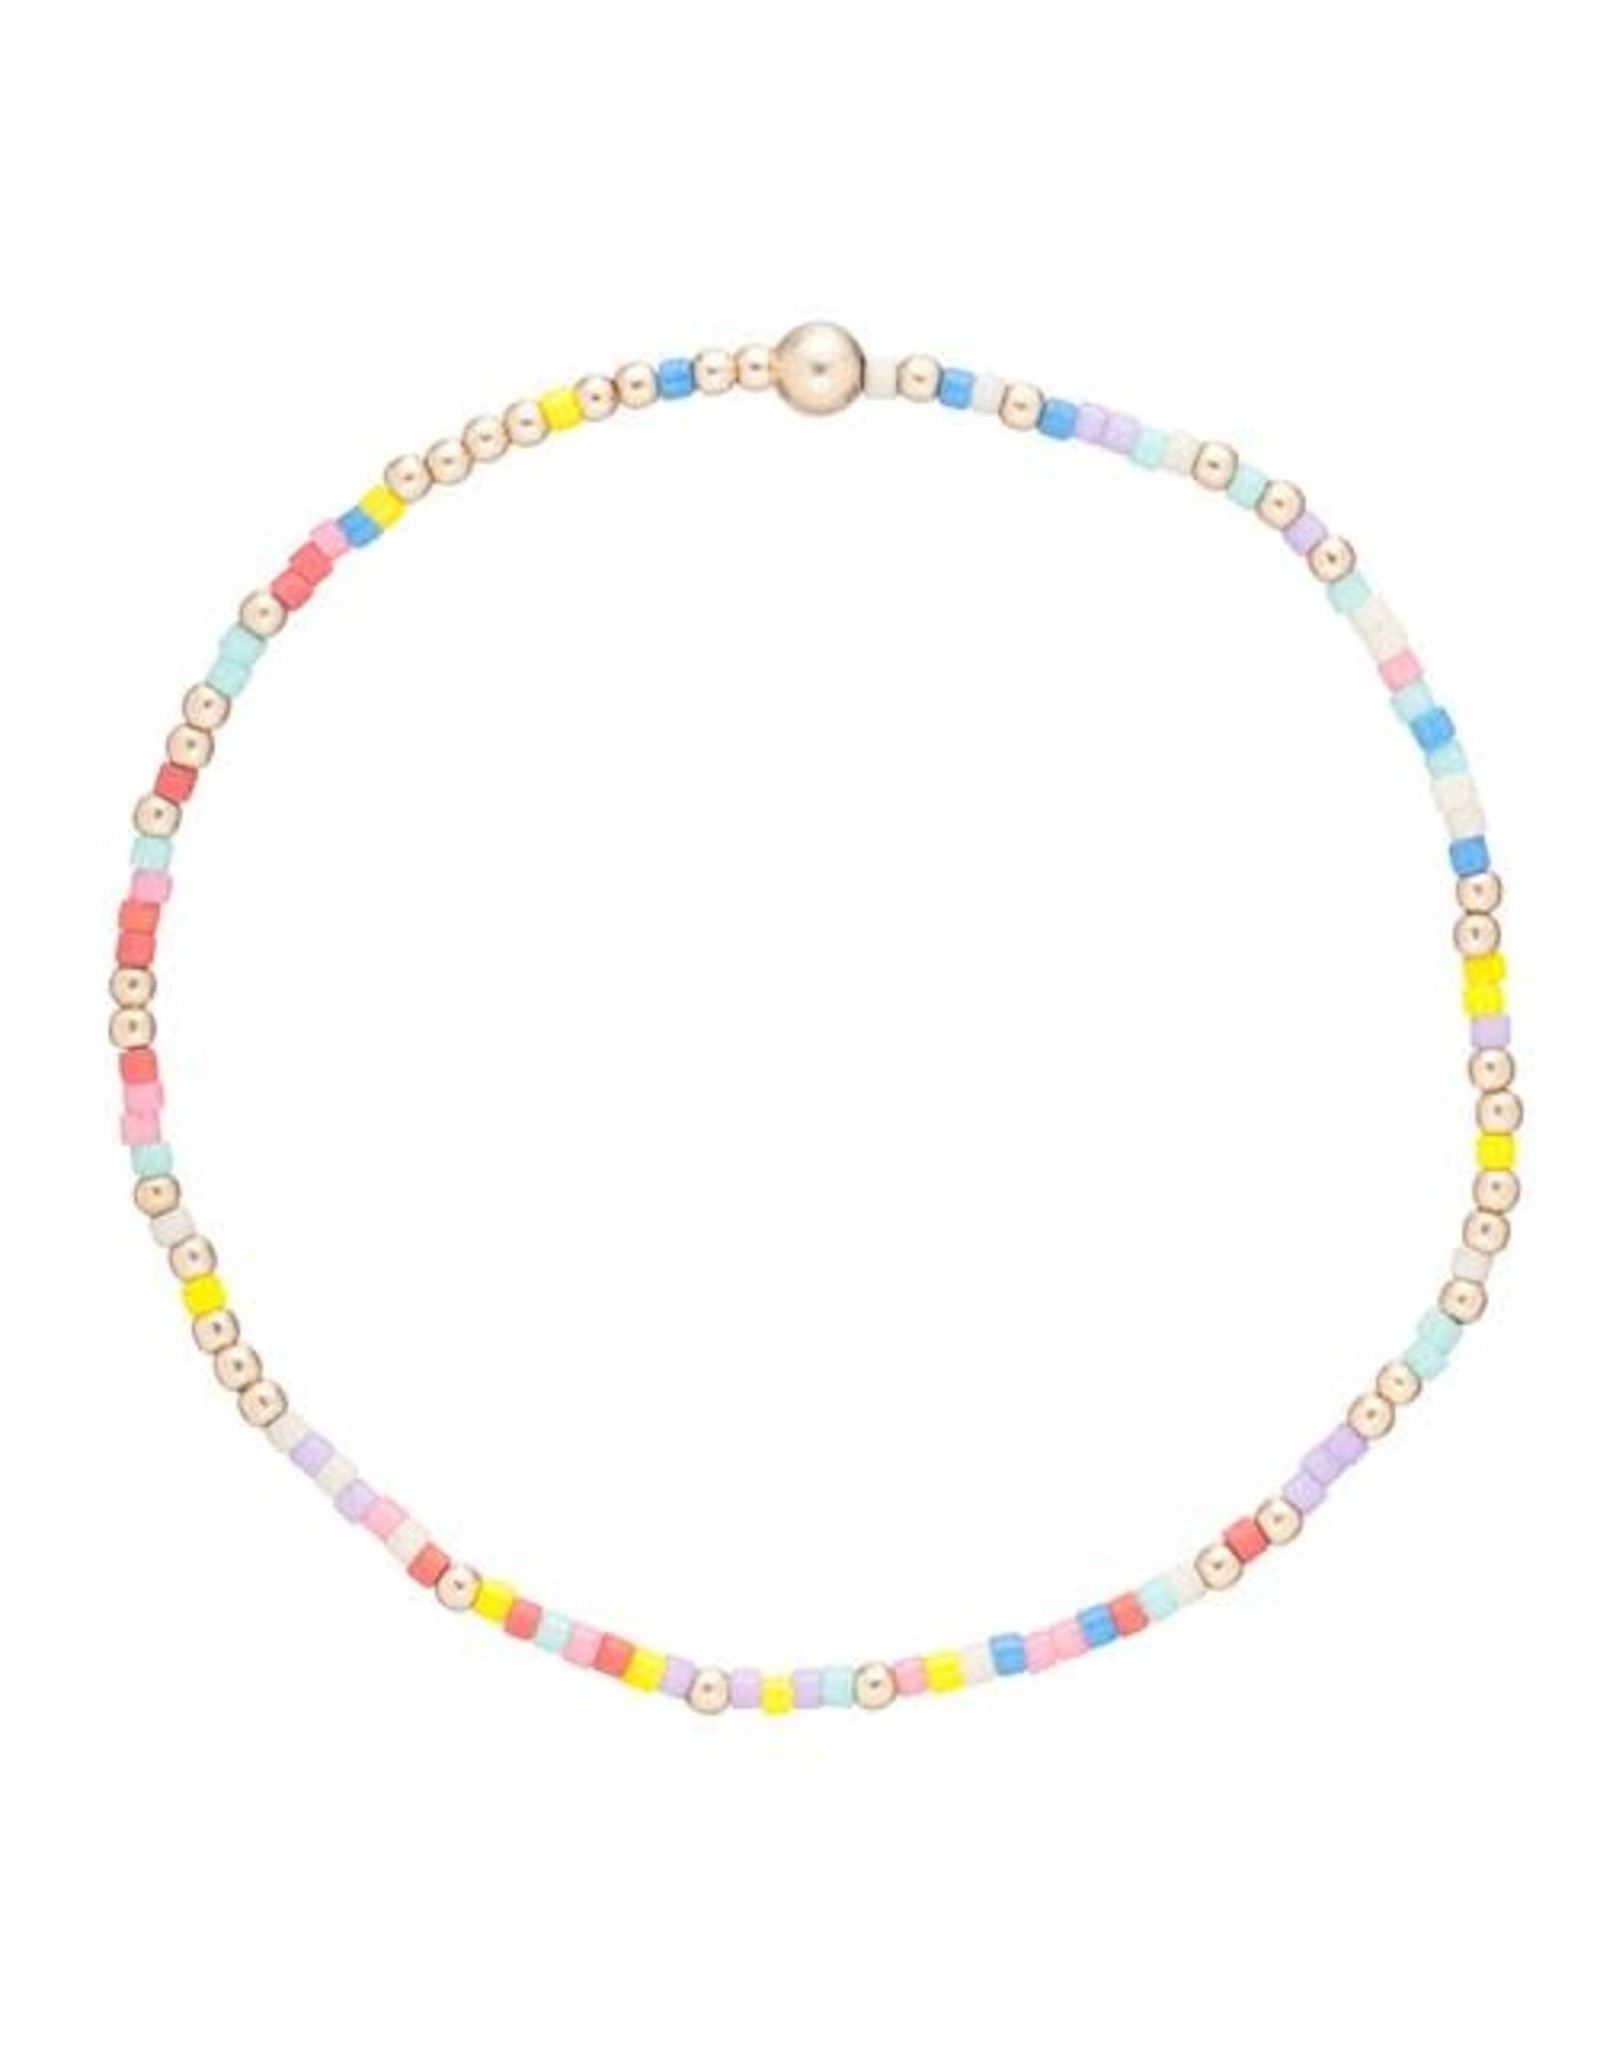 Oak + Arrow Interiors Hope Unwritten Bracelet - Beach Ball